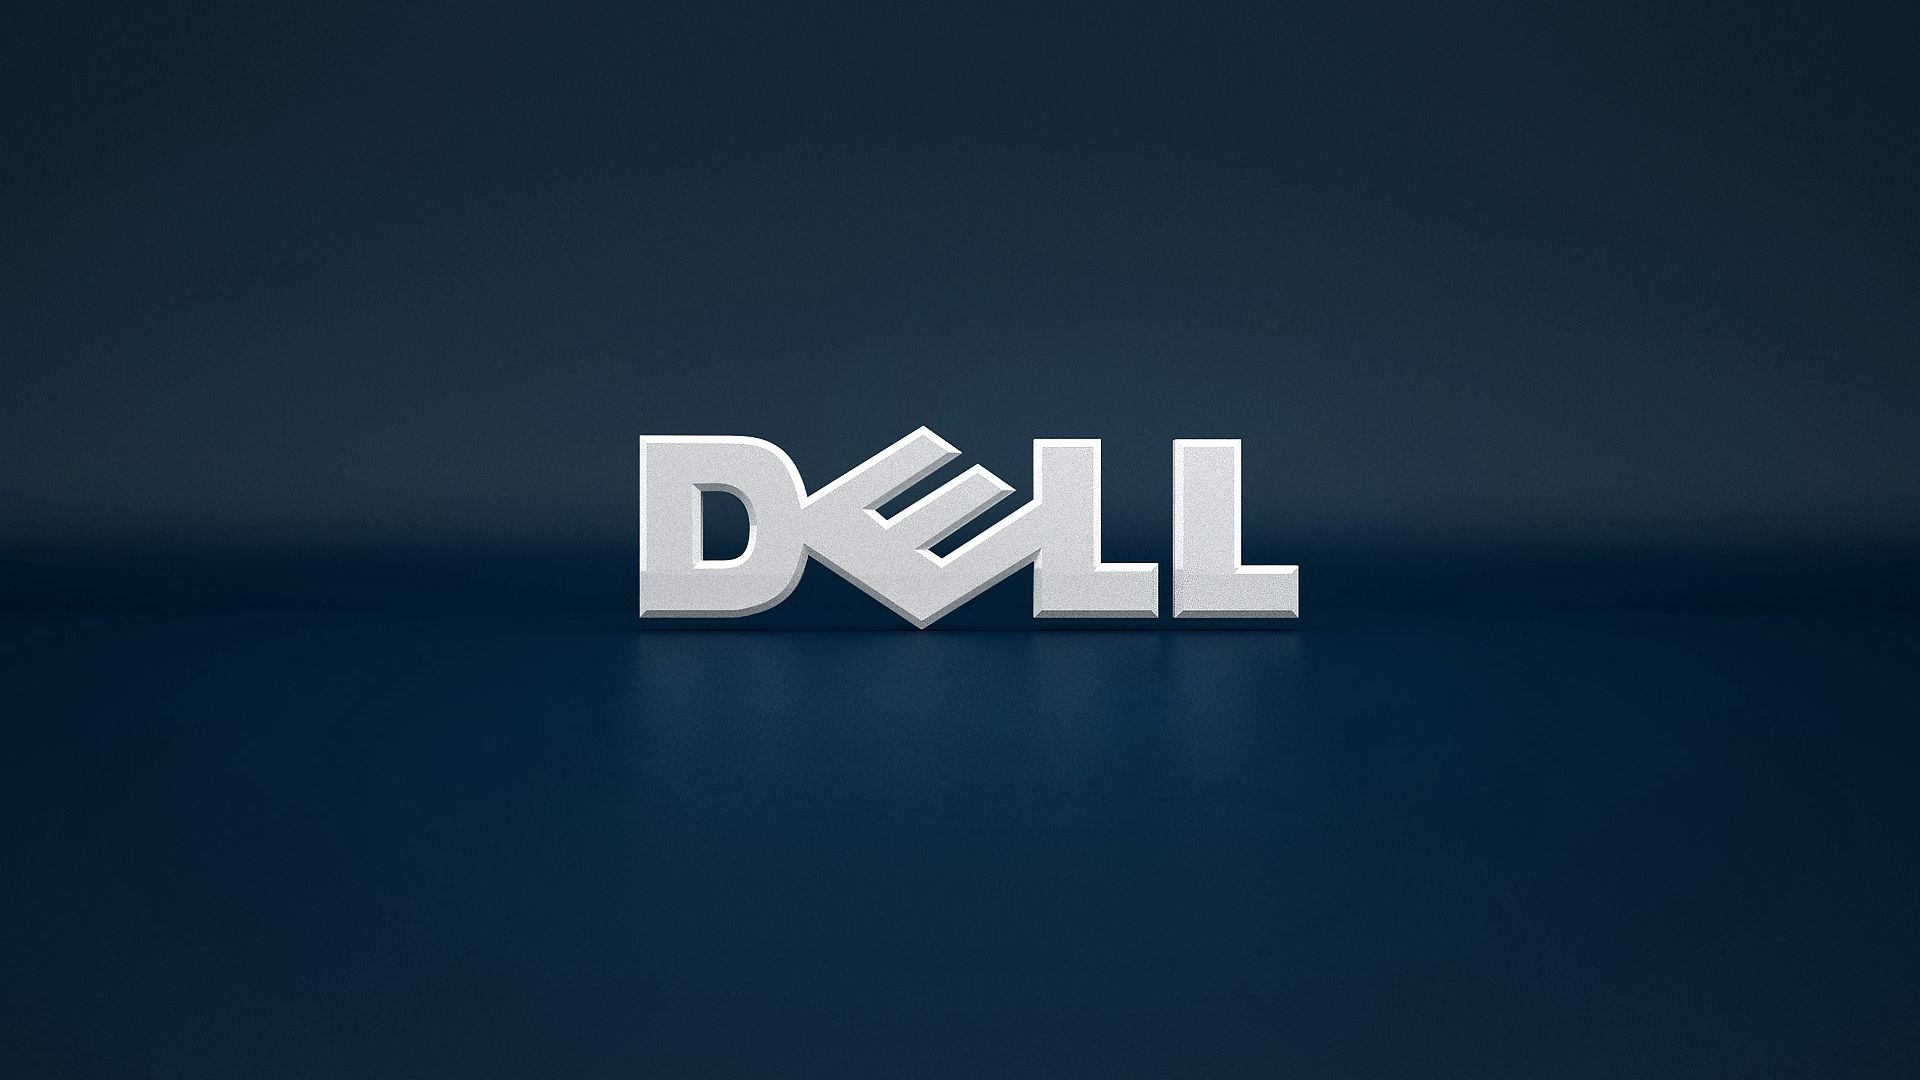 Dell free background